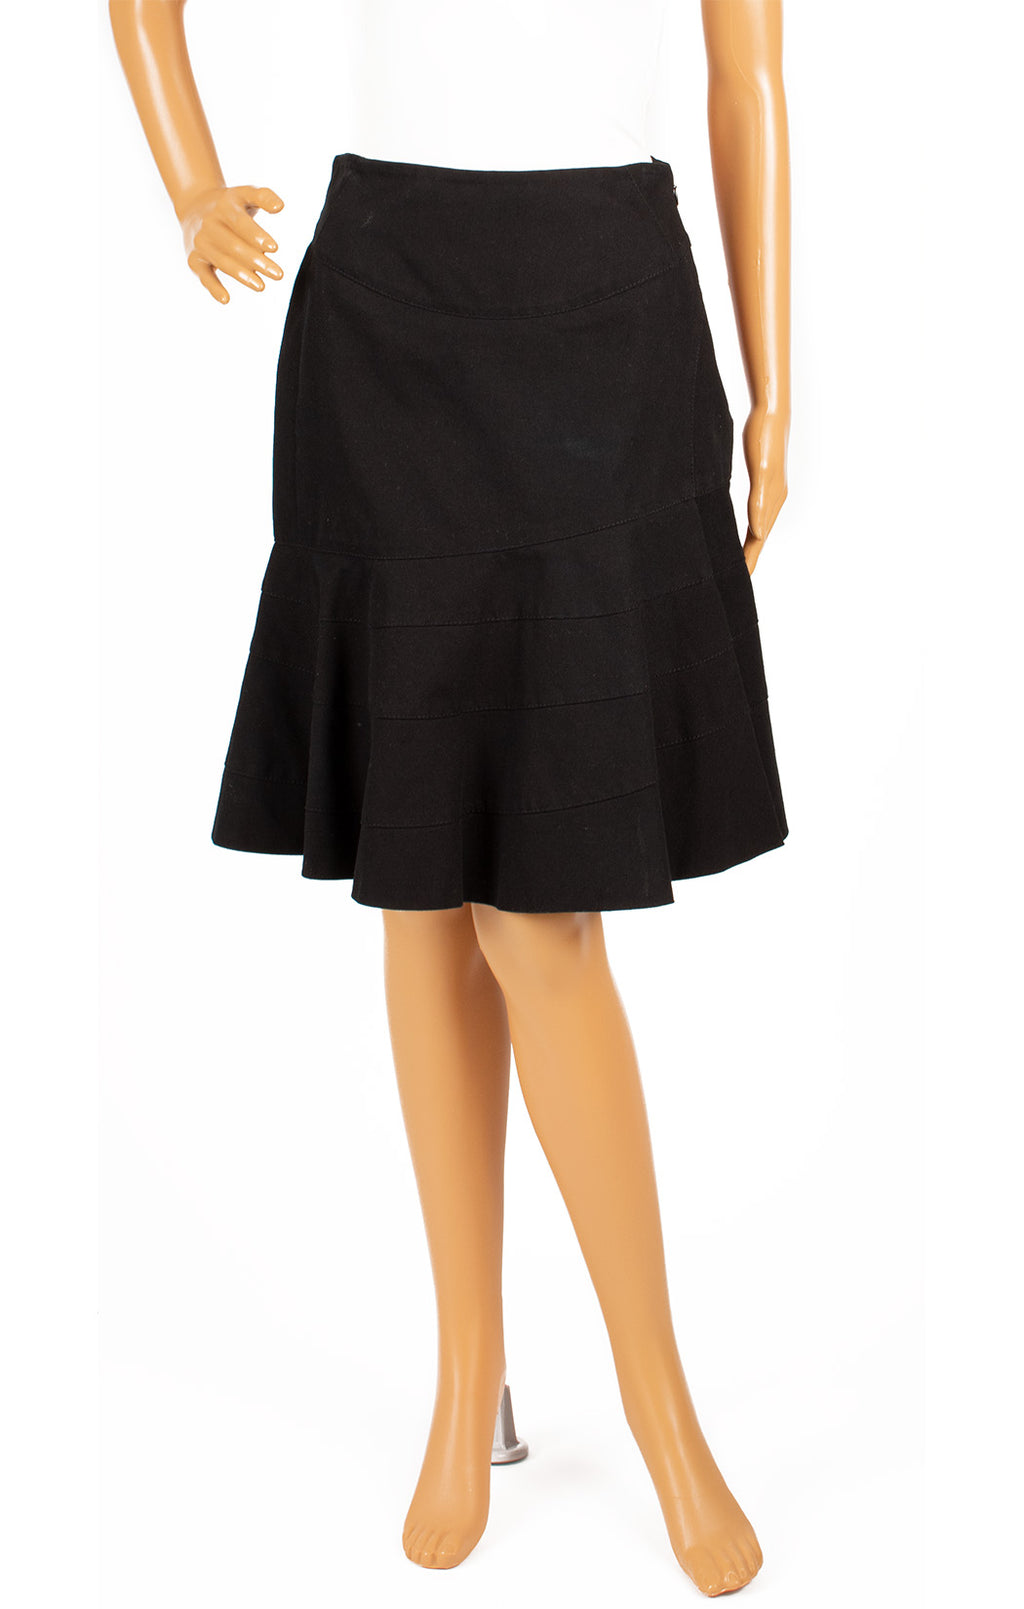 Front view of ALTUZARRA Skirt Size: 38 (comparable to US 2-4)